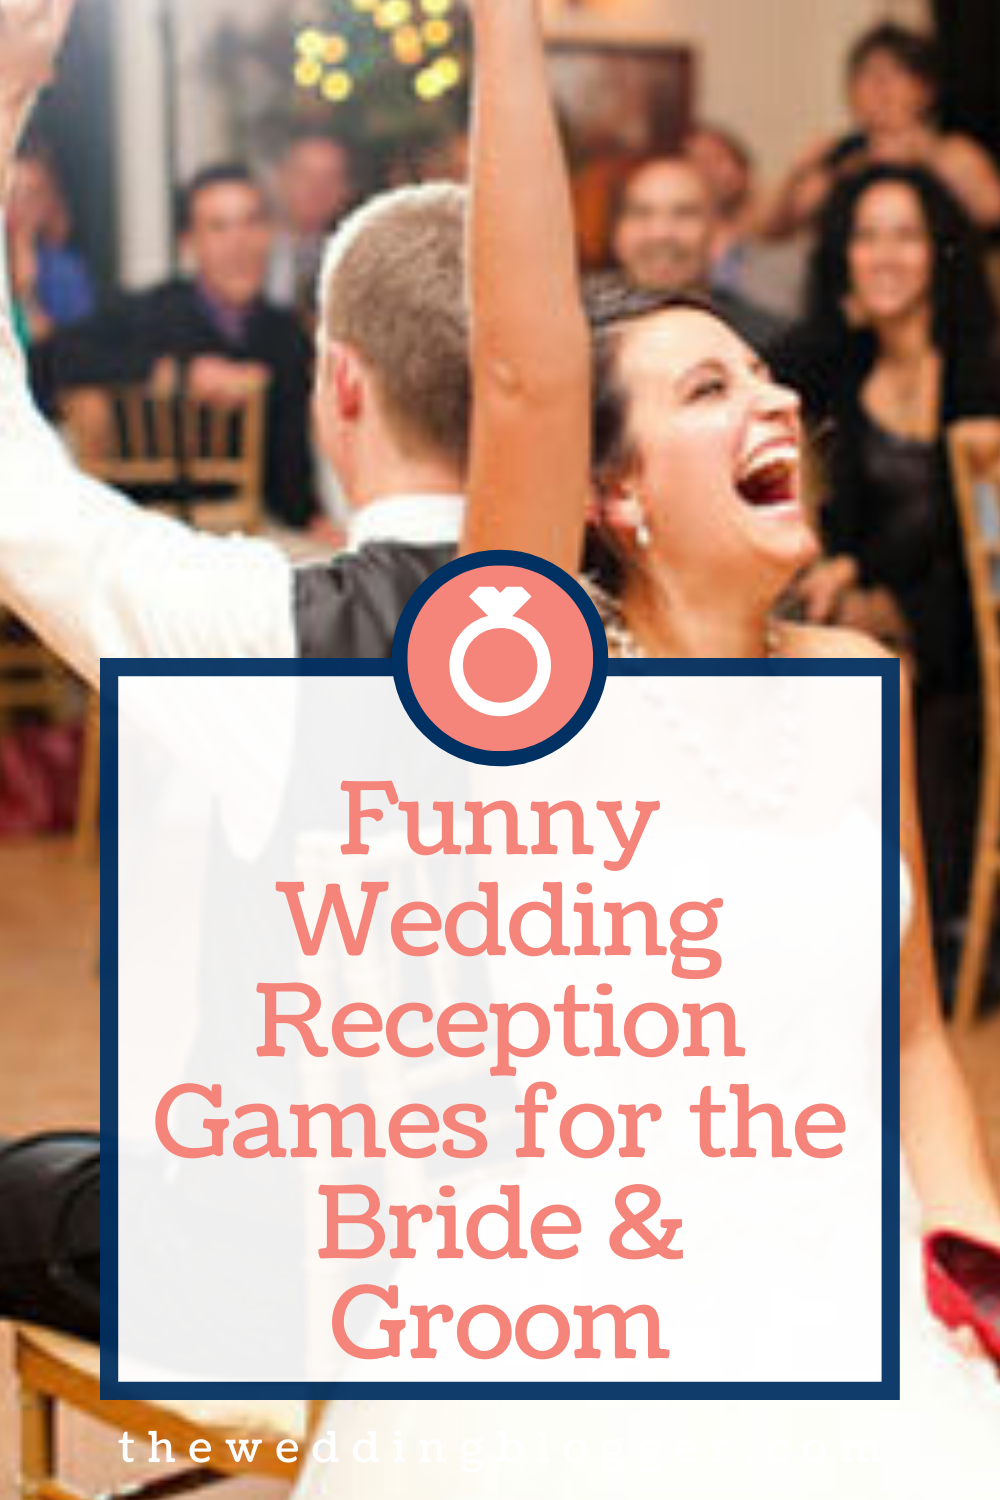 Funny Wedding Reception Games for the Bride and Groom